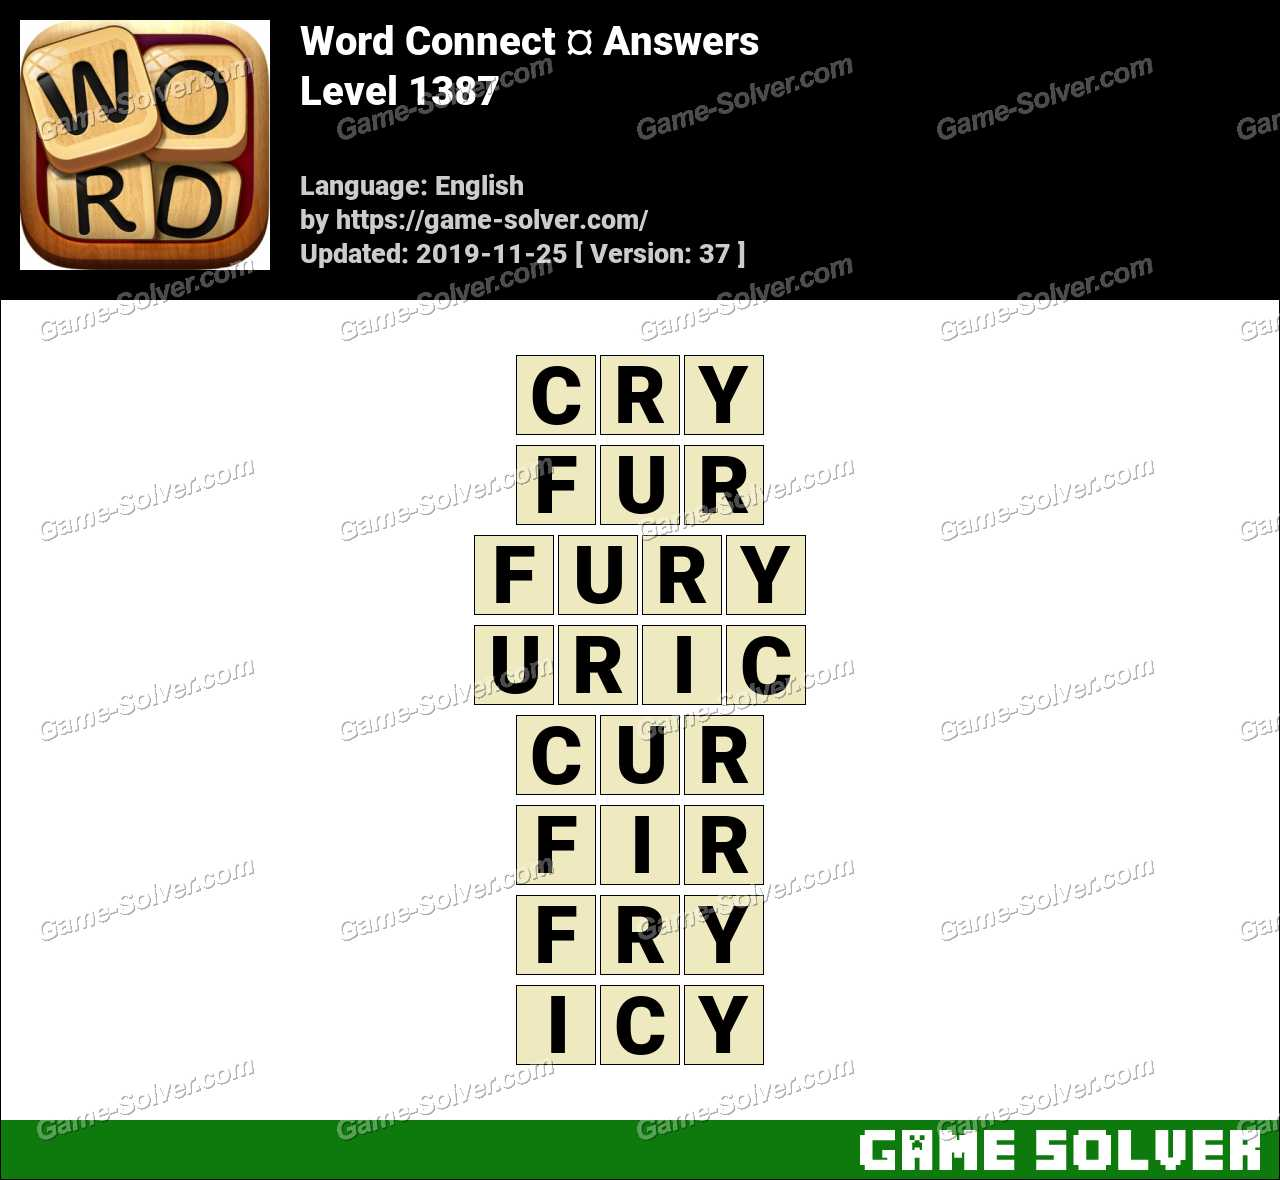 Word Connect Level 1387 Answers